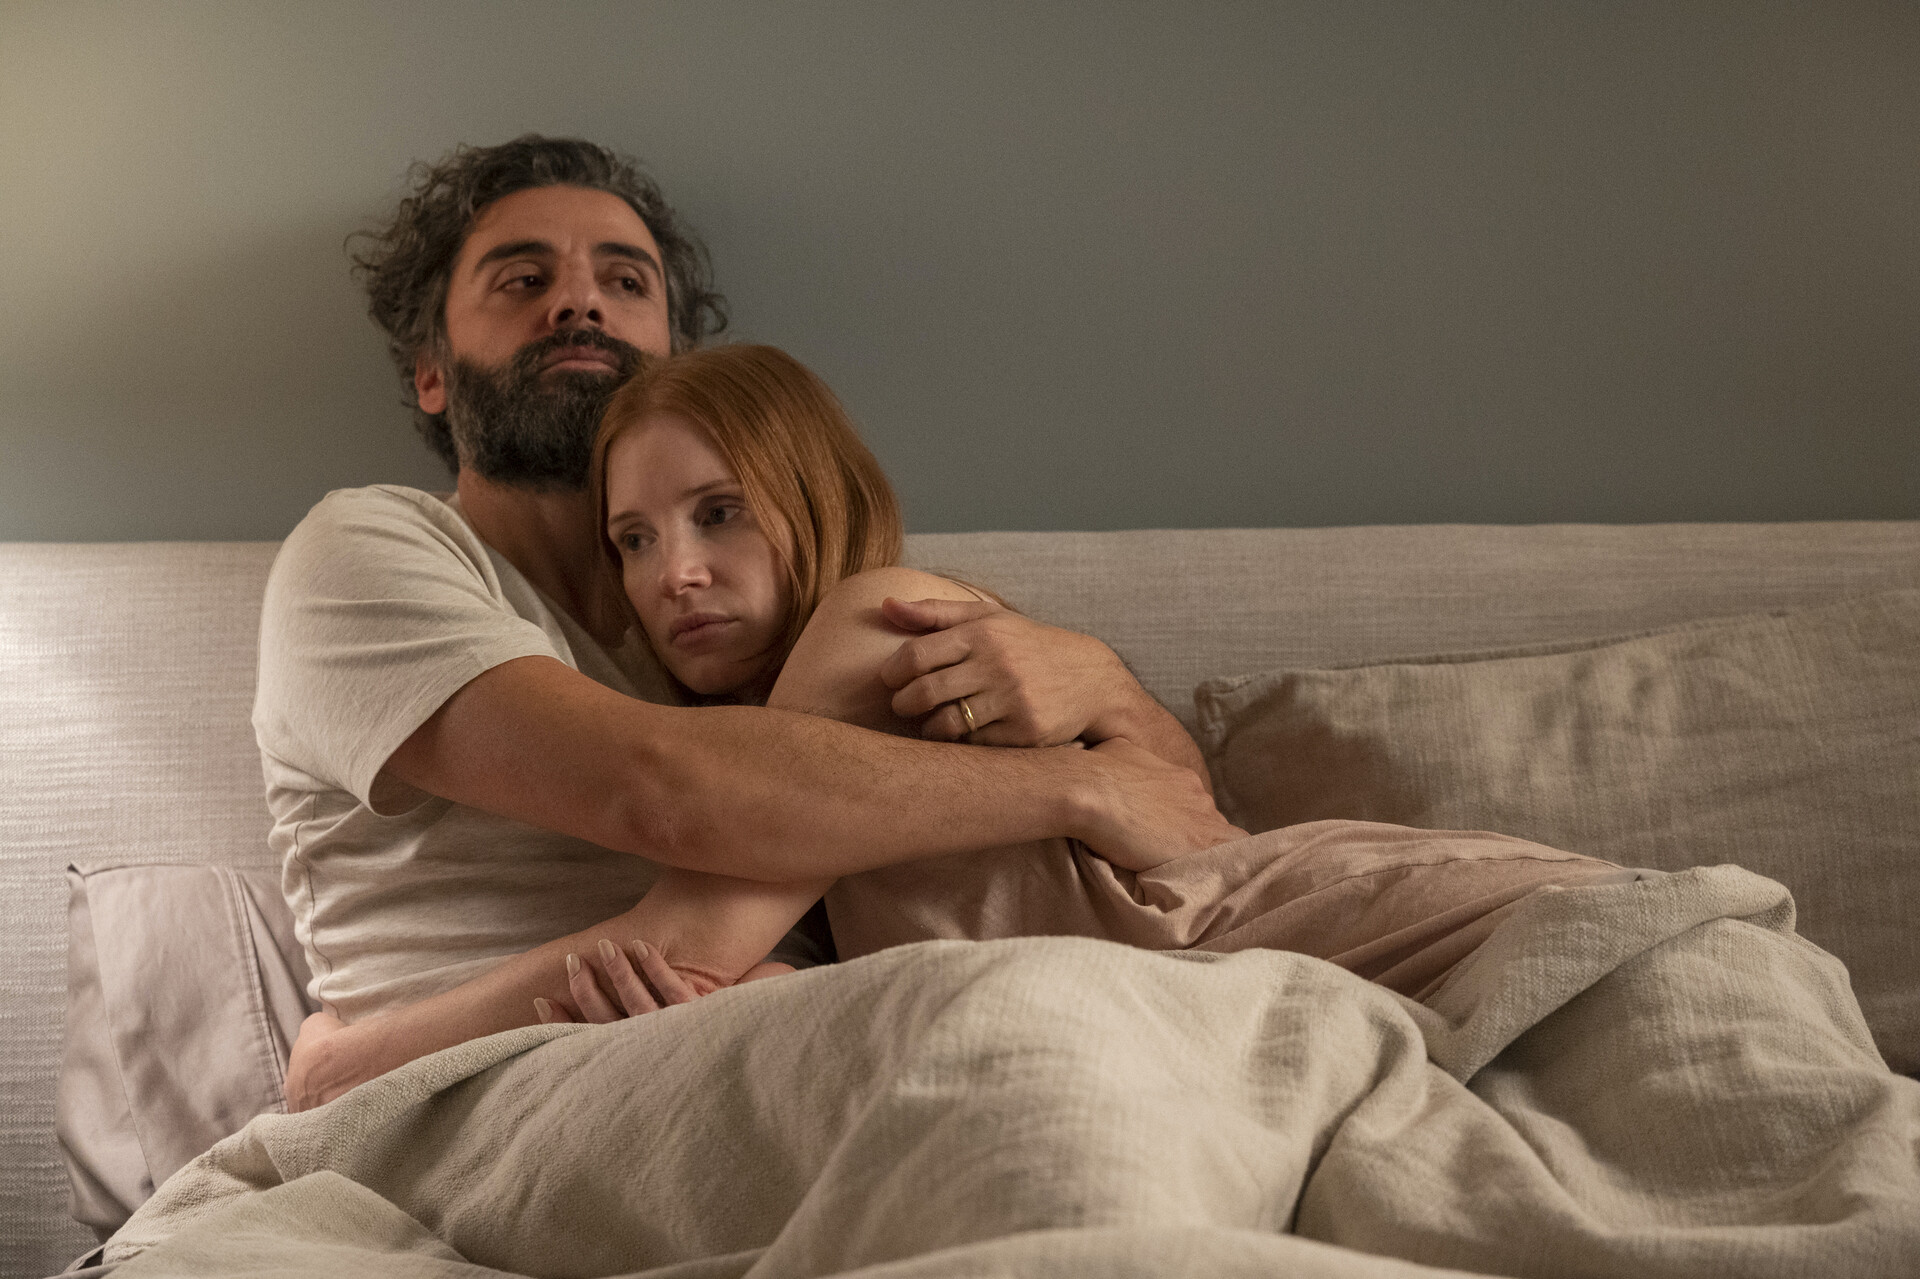 Jessica Chastain and Oscar Isaac bring raw intensity to a flawed 'Scenes From a Marriage'